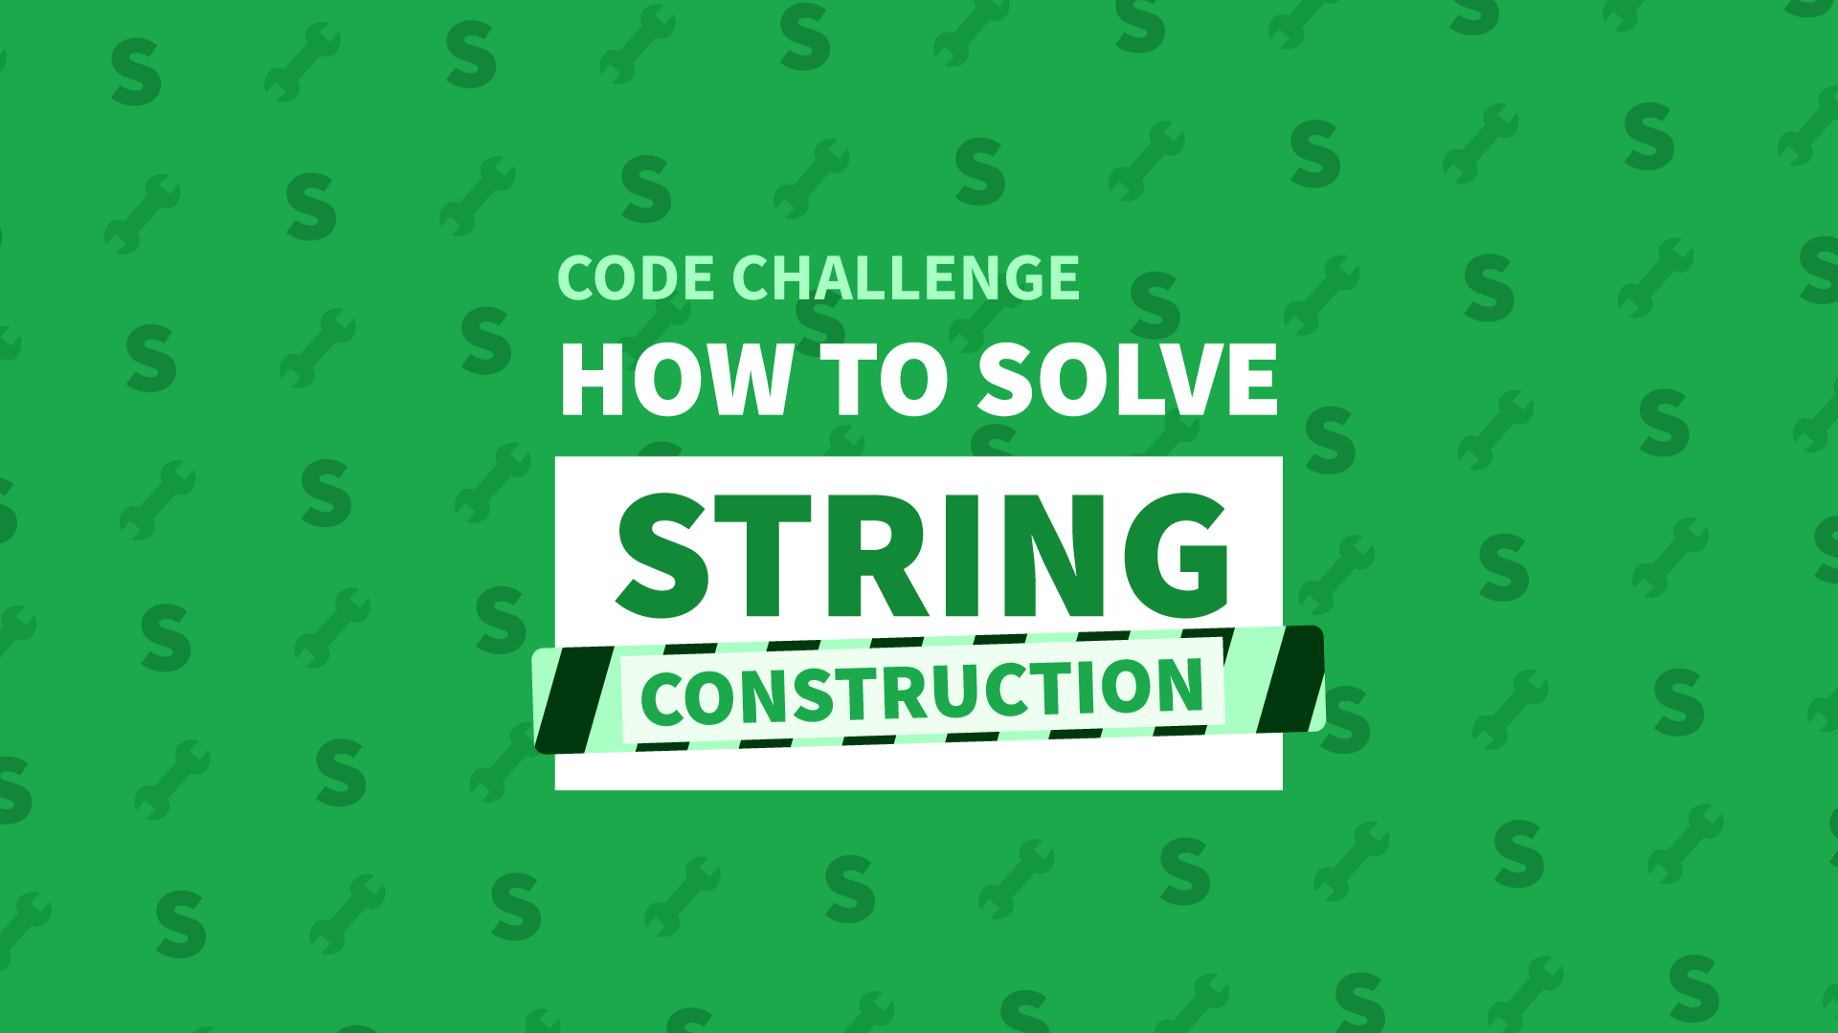 How To Solve The String Construction Code Challenge